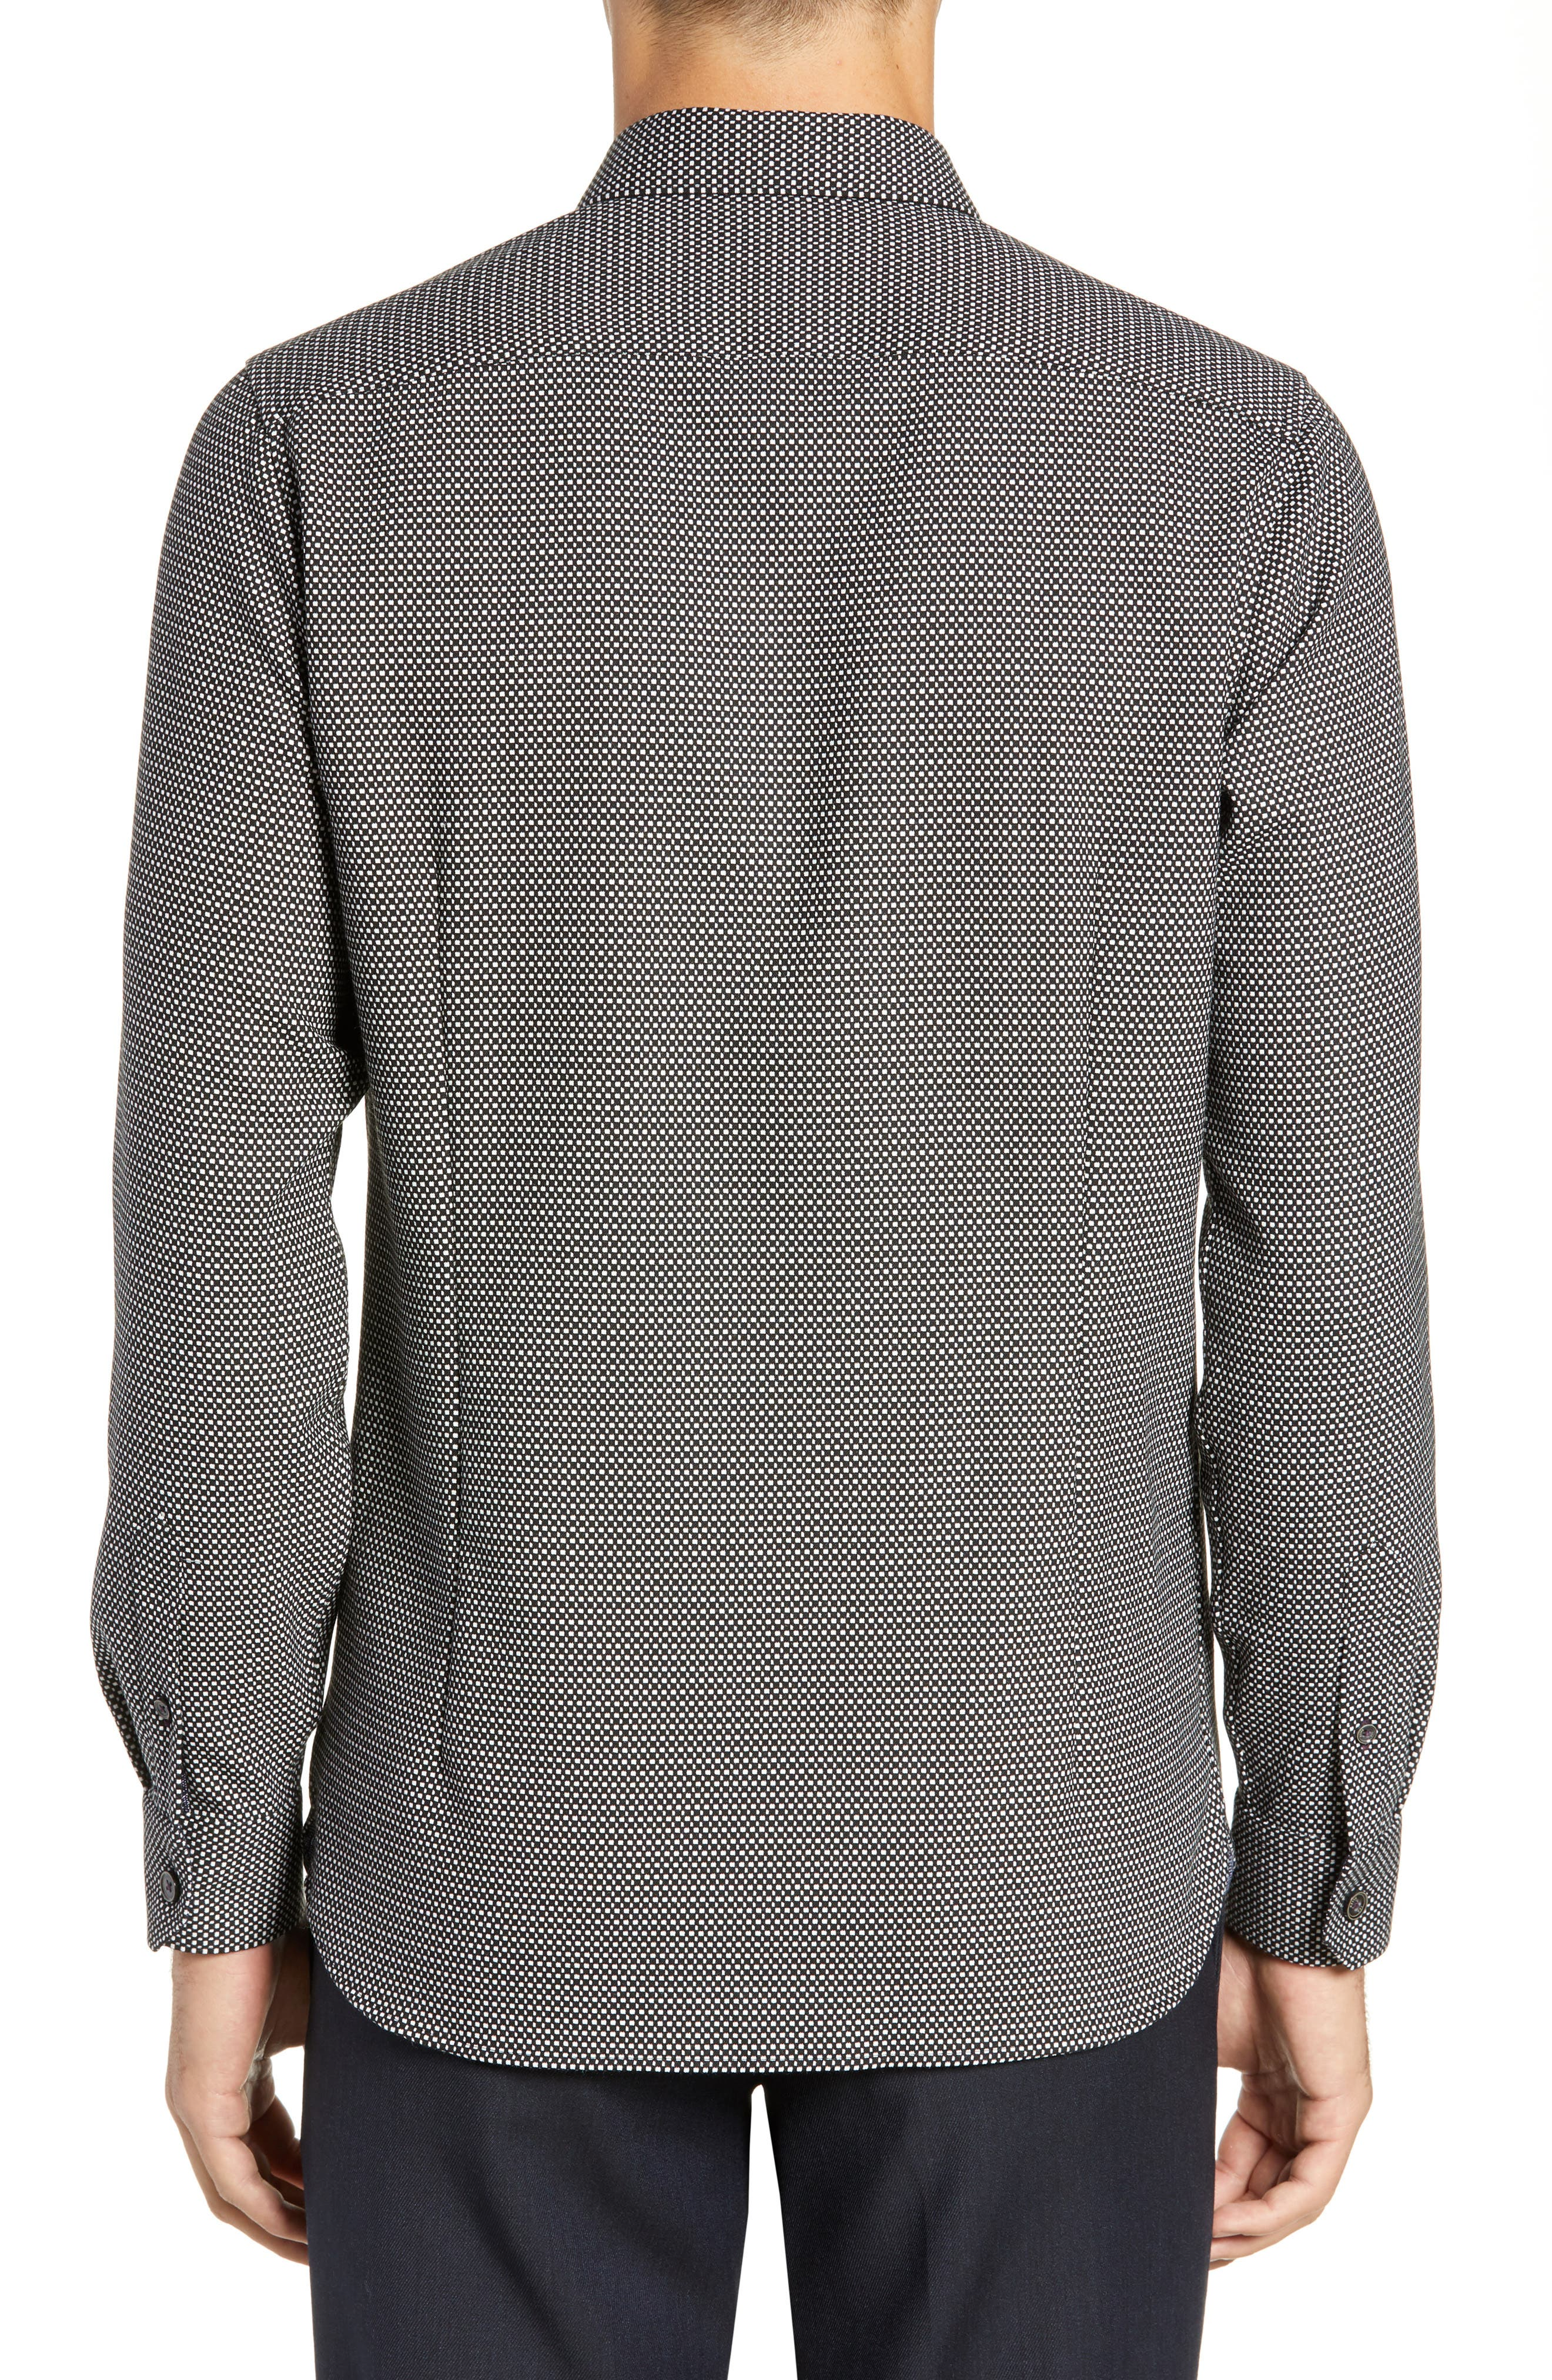 Wapping Slim Fit Textured Shirt,                             Alternate thumbnail 3, color,                             BLACK